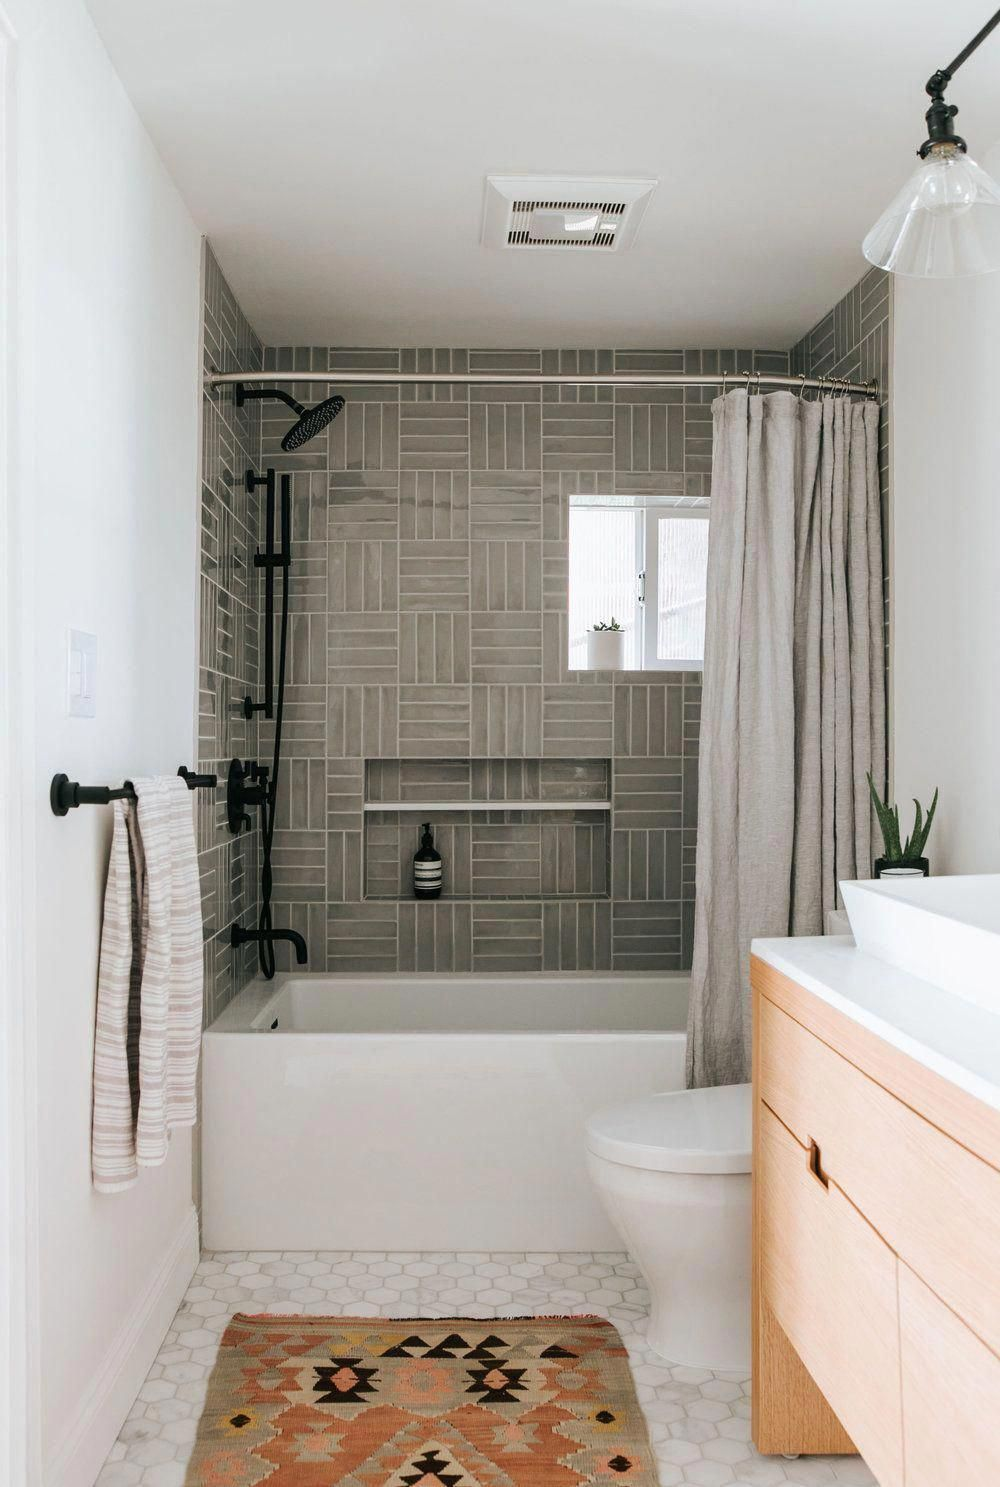 White Bathroom Ideas These 27 Dazzling White Bathrooms Provide Design Ideas For Every Person Whitebathroom In 2020 Bathroom Trends Boho Bathroom Bathroom Styling